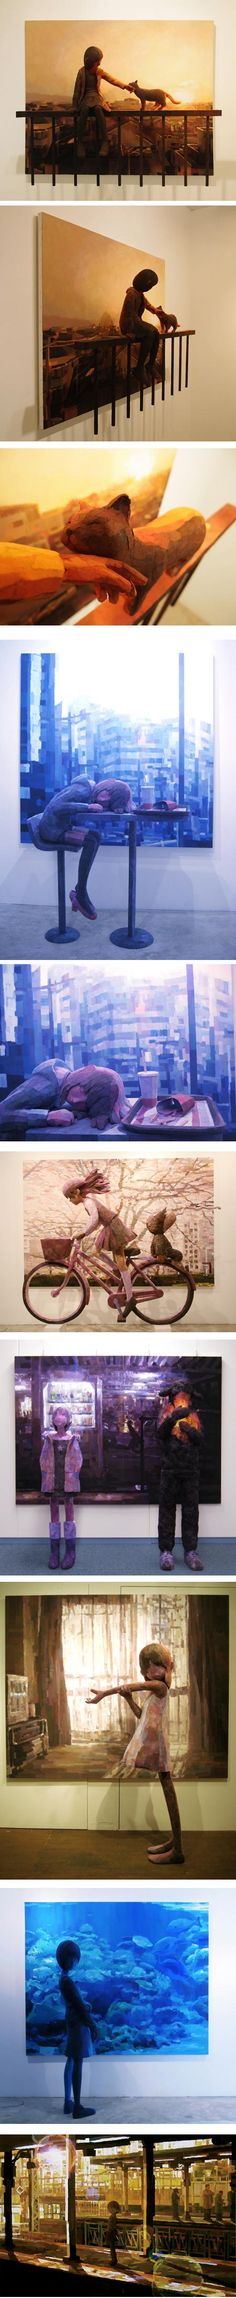 Shintaro Ohata  I would love to see these in person...look closely: a sculpture in front of a painting, both so lovely.